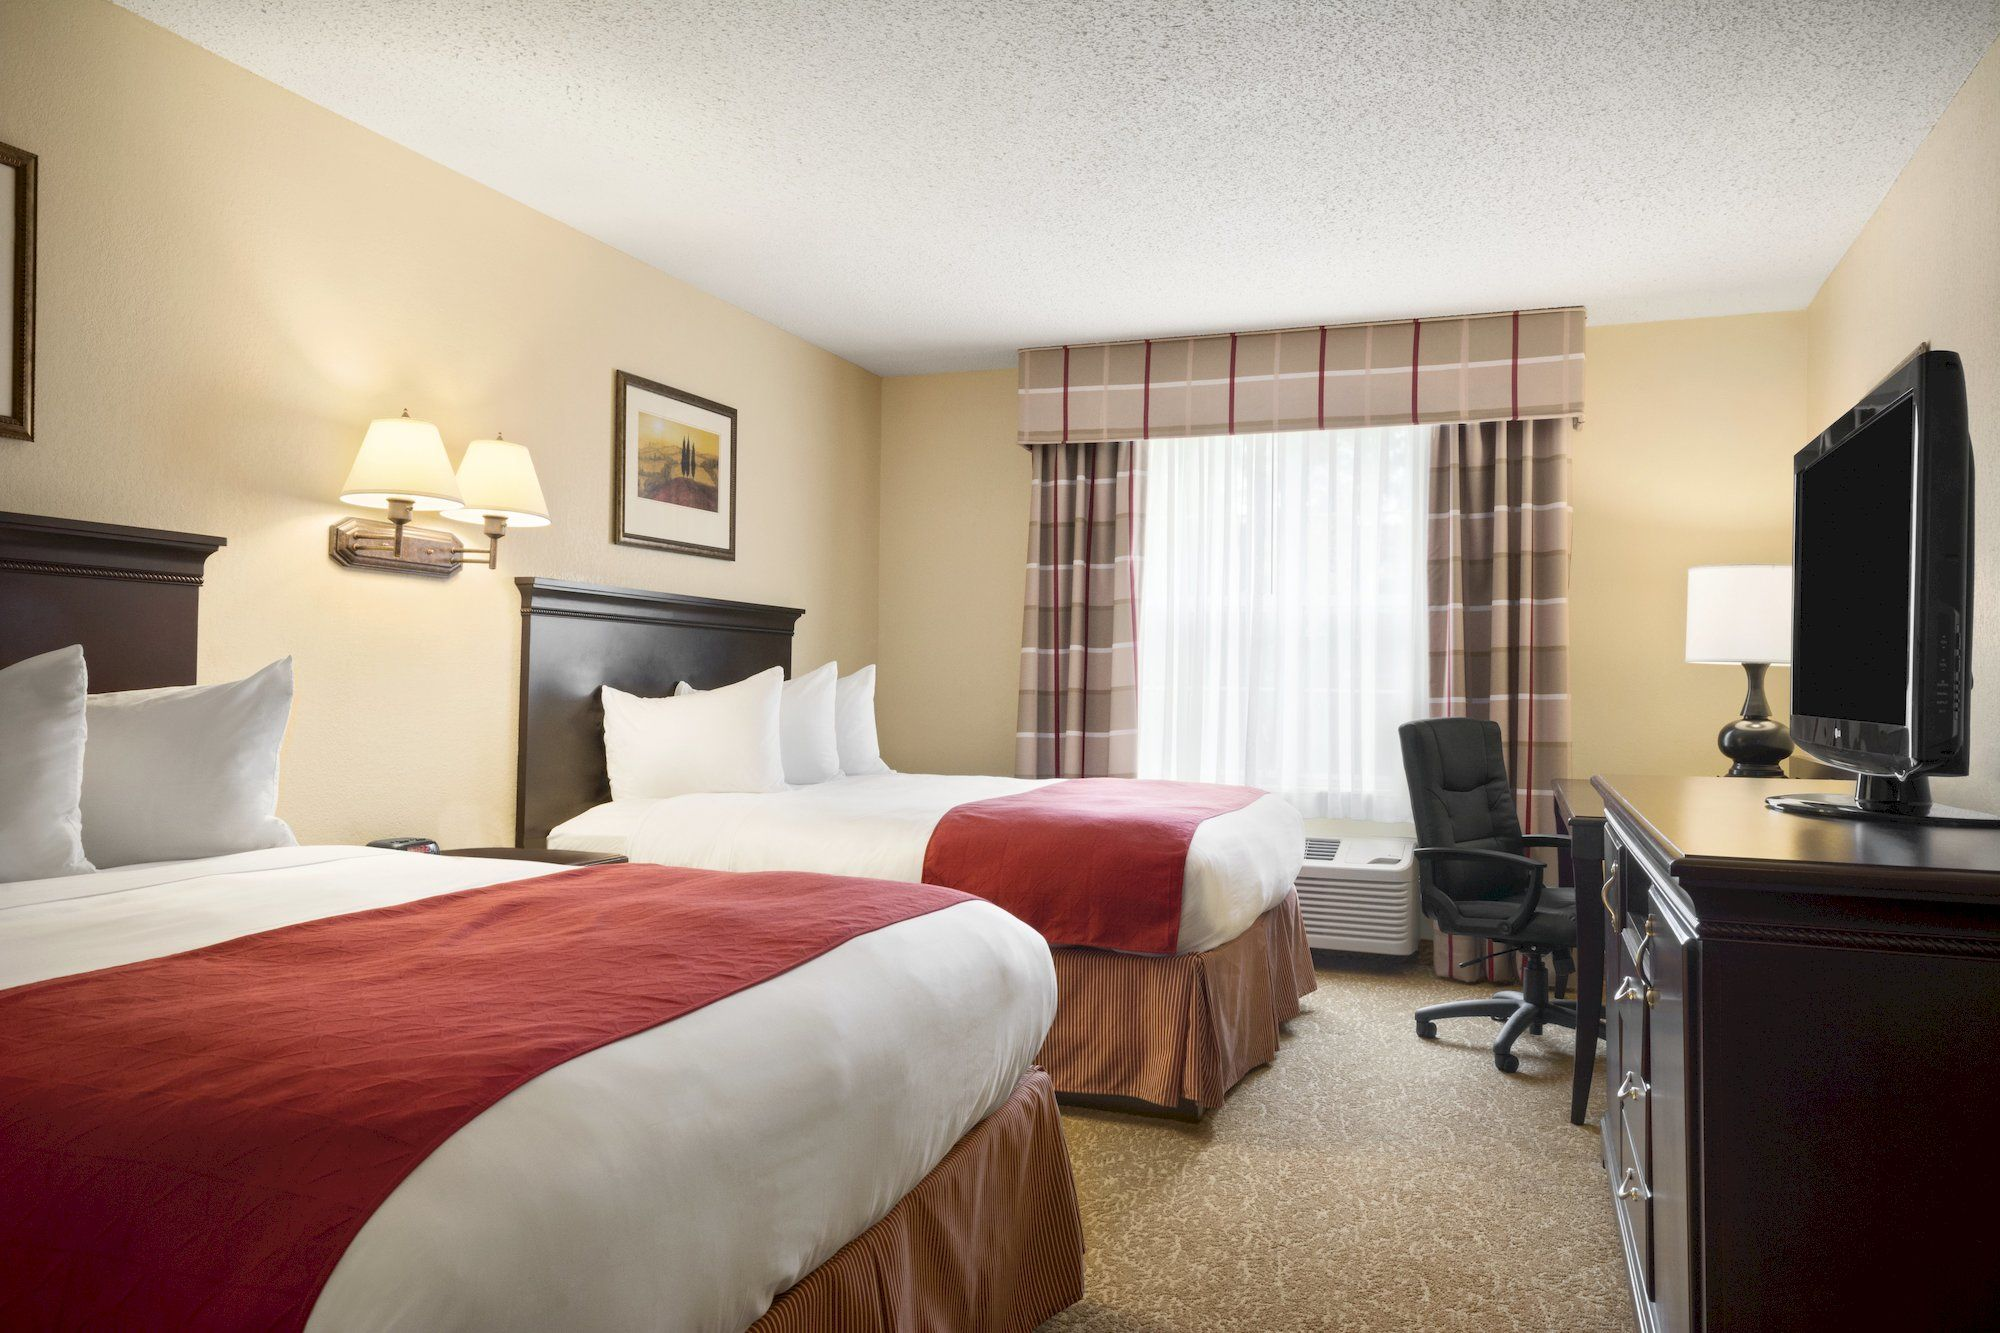 Country Inn & Suites Norcross in Norcross, GA